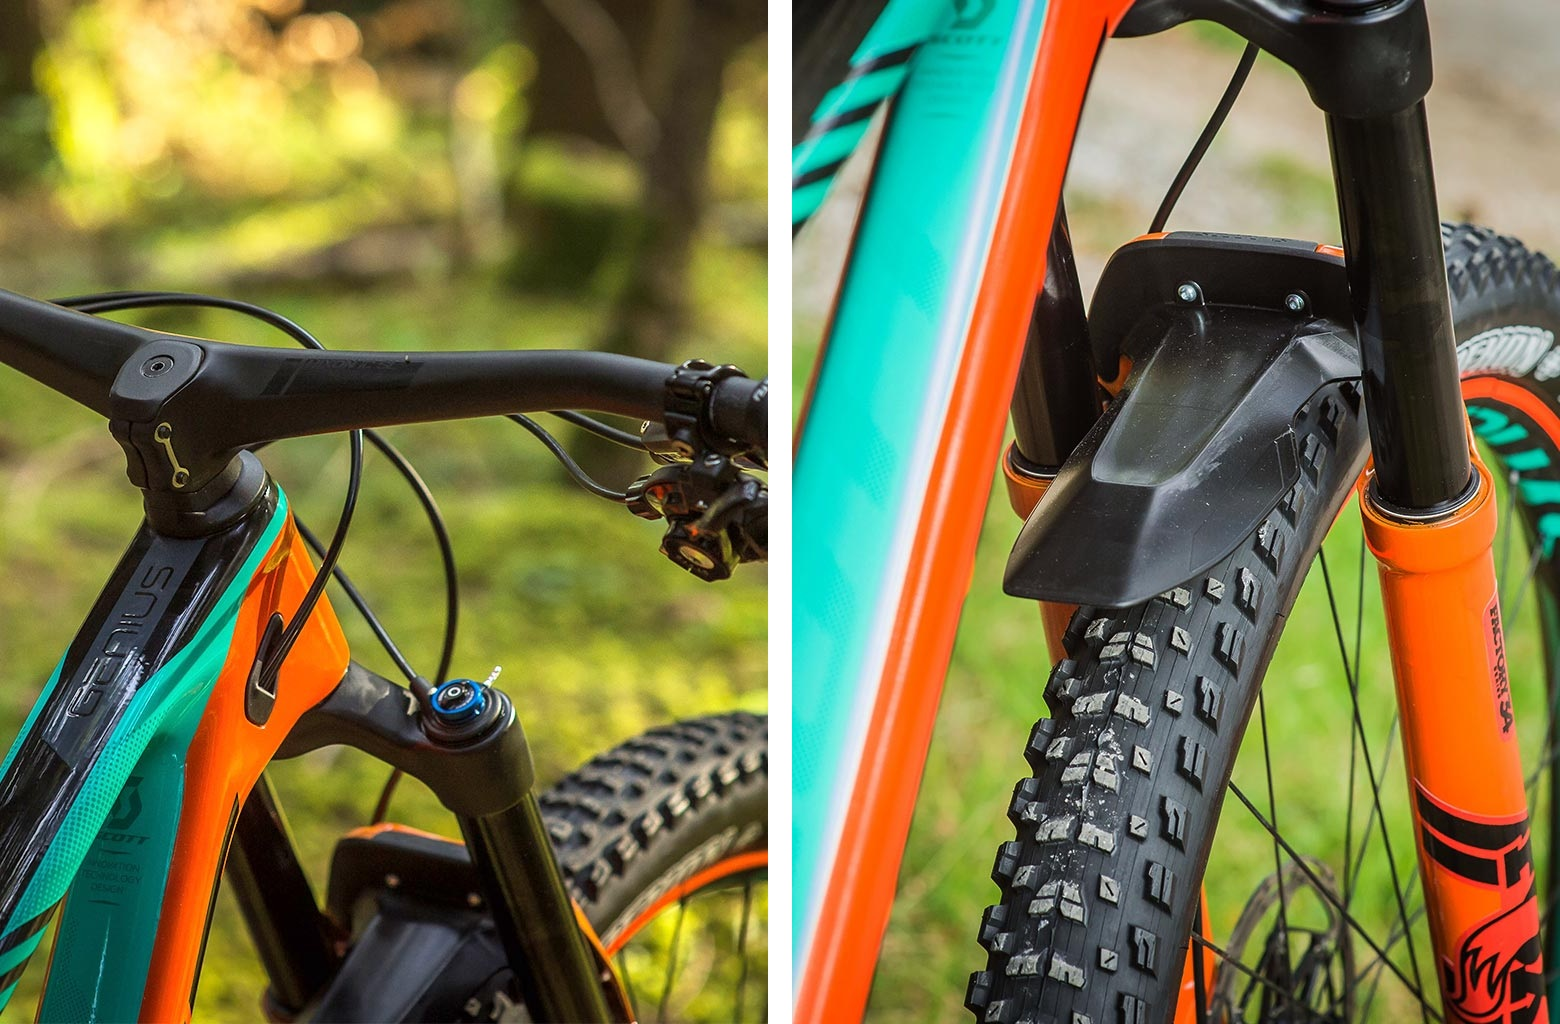 At 290g, the Hixon bar/stem is lighter than some  regular handlebars.